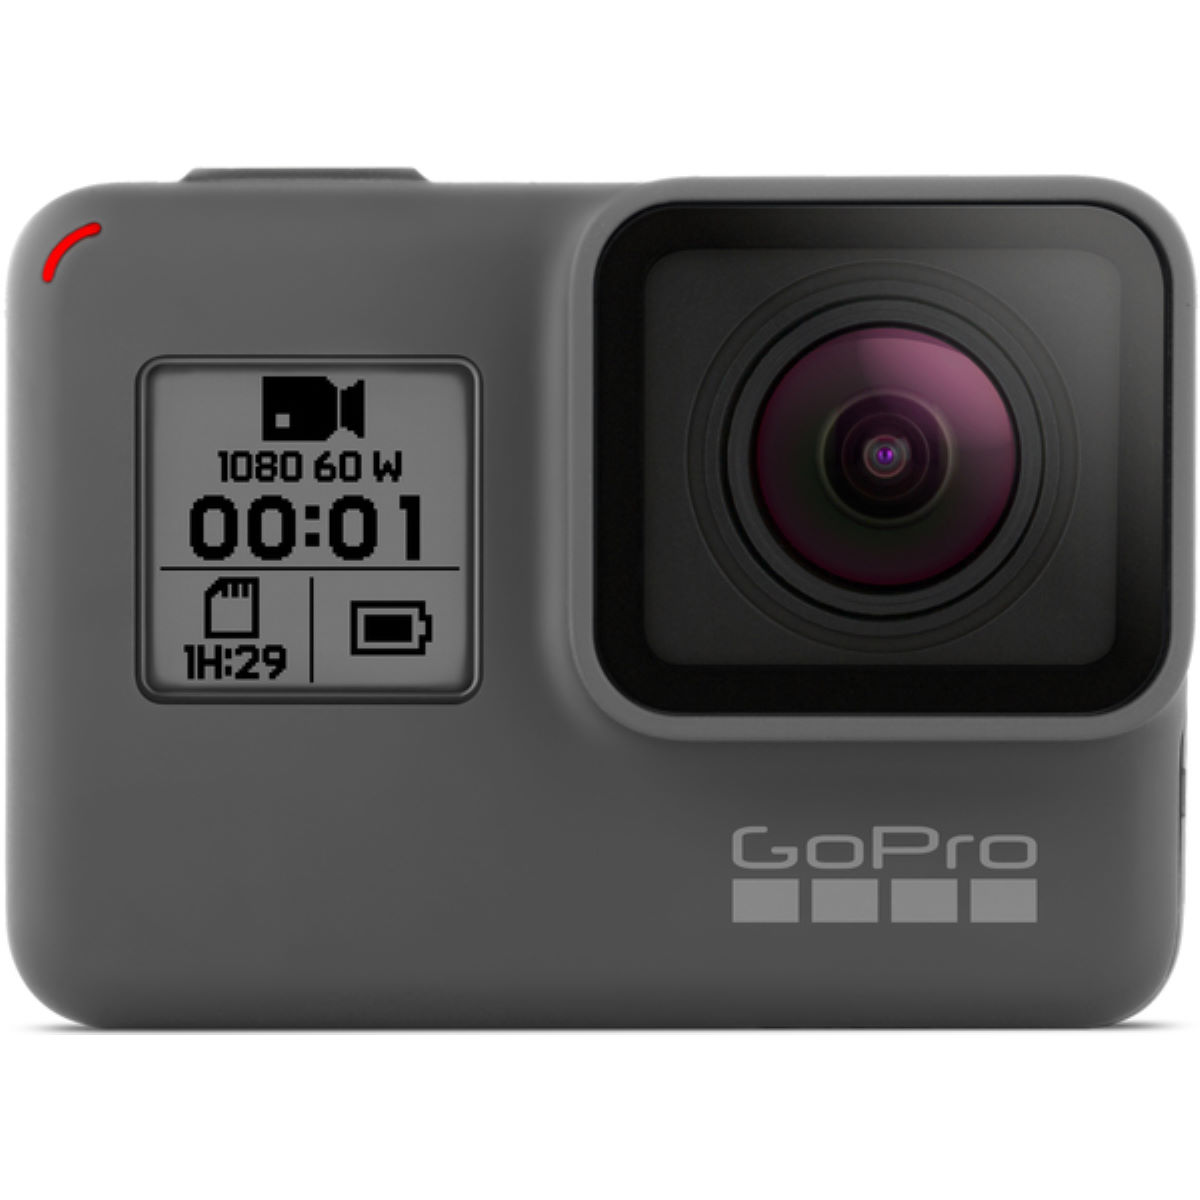 GoPro Hero - Cámaras de vídeo y fotos